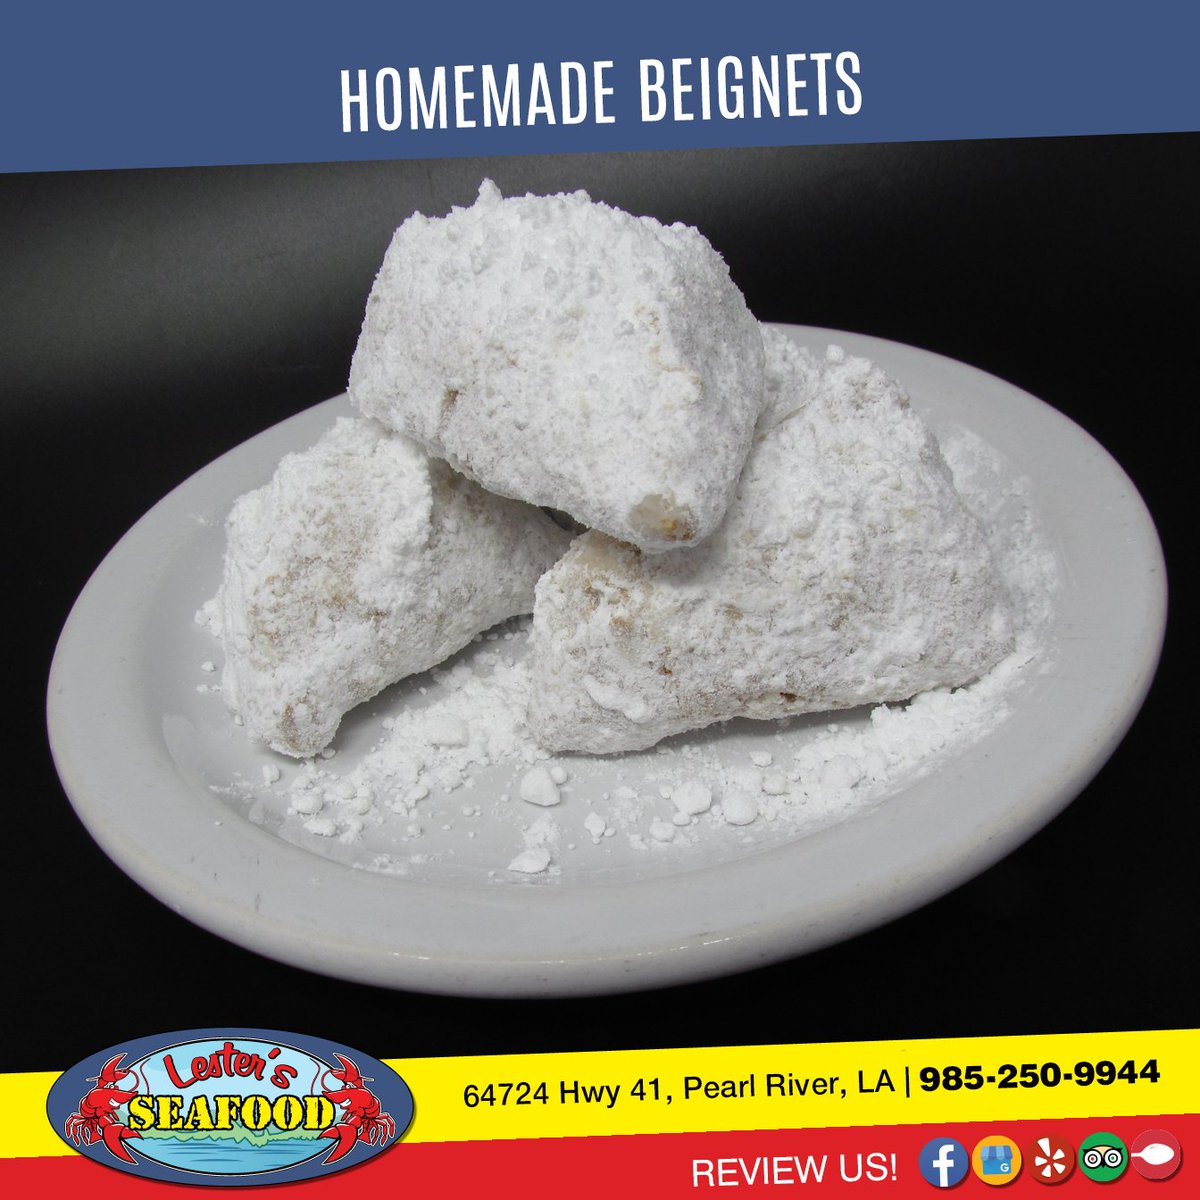 BEIGNETS - Our homemade, deep fried Beignets covered with powdered sugar, are a sweet treat after your meal. 4.50  #LestersSeafood #Chicken #FoodPic #NomNom https://t.co/XhavPm4qSX